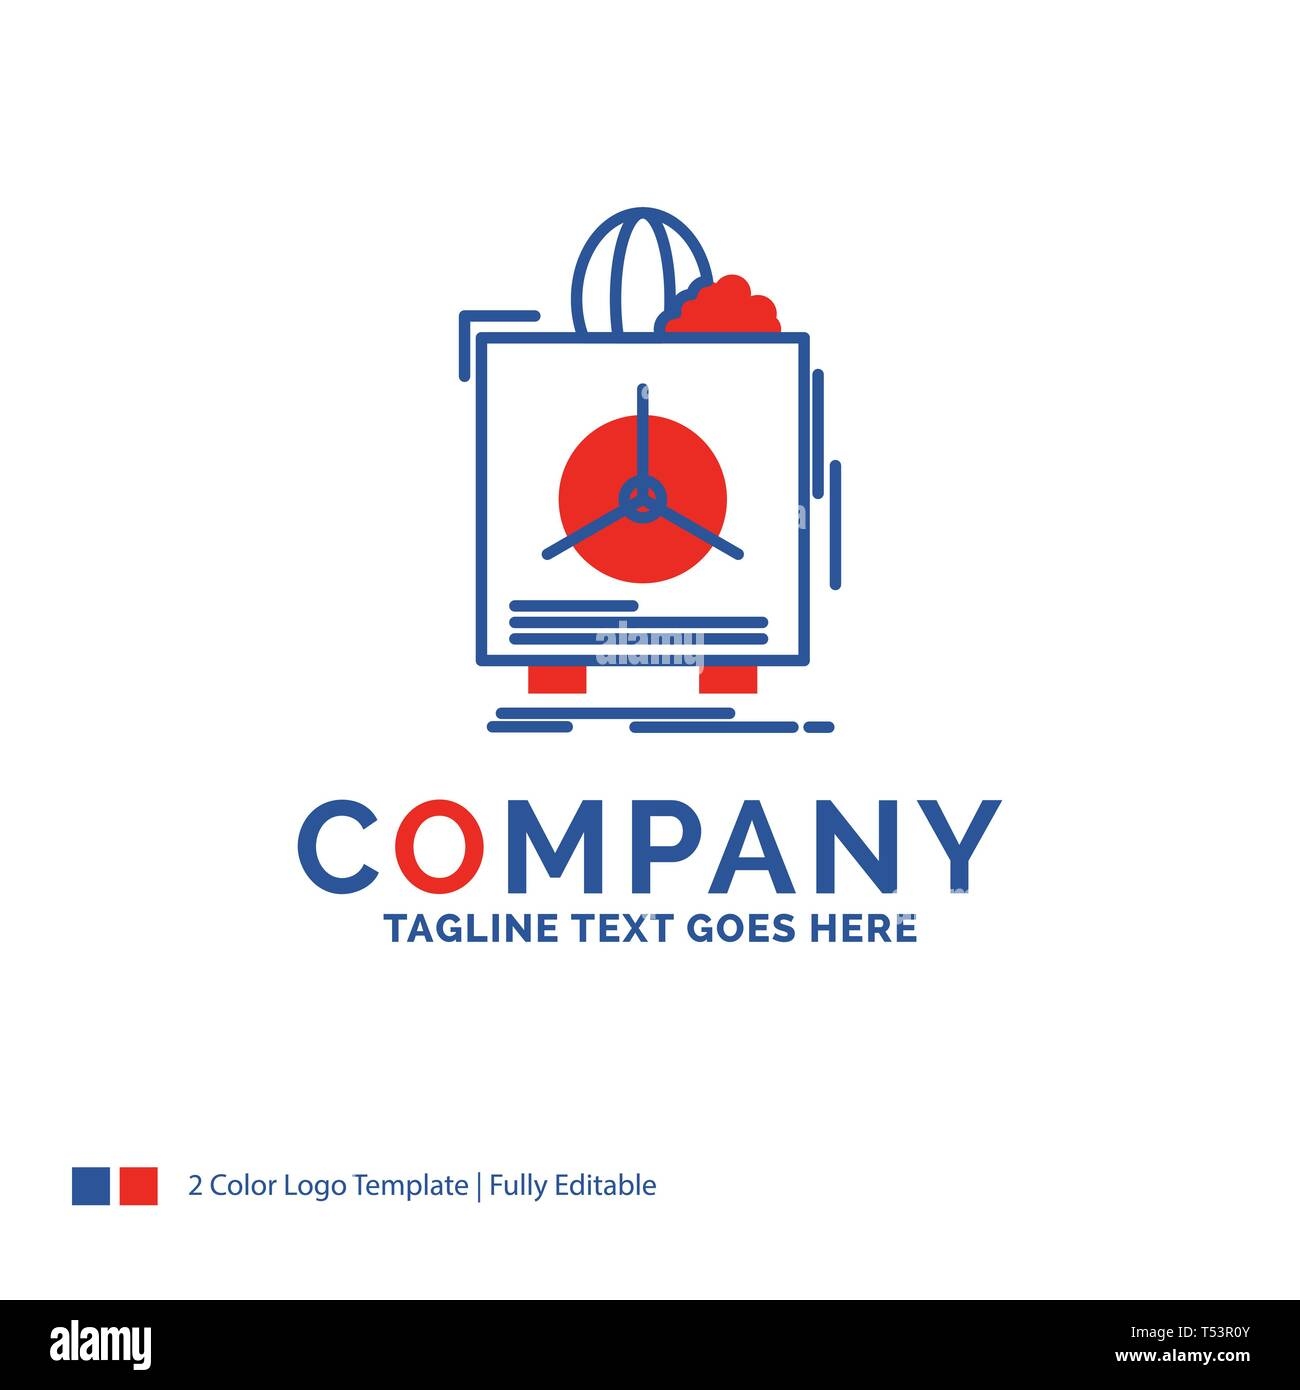 Company Name Logo Design For insurance, Fragile, product, warranty, health. Blue and red Brand Name Design with place for Tagline. Abstract Creative L - Stock Image